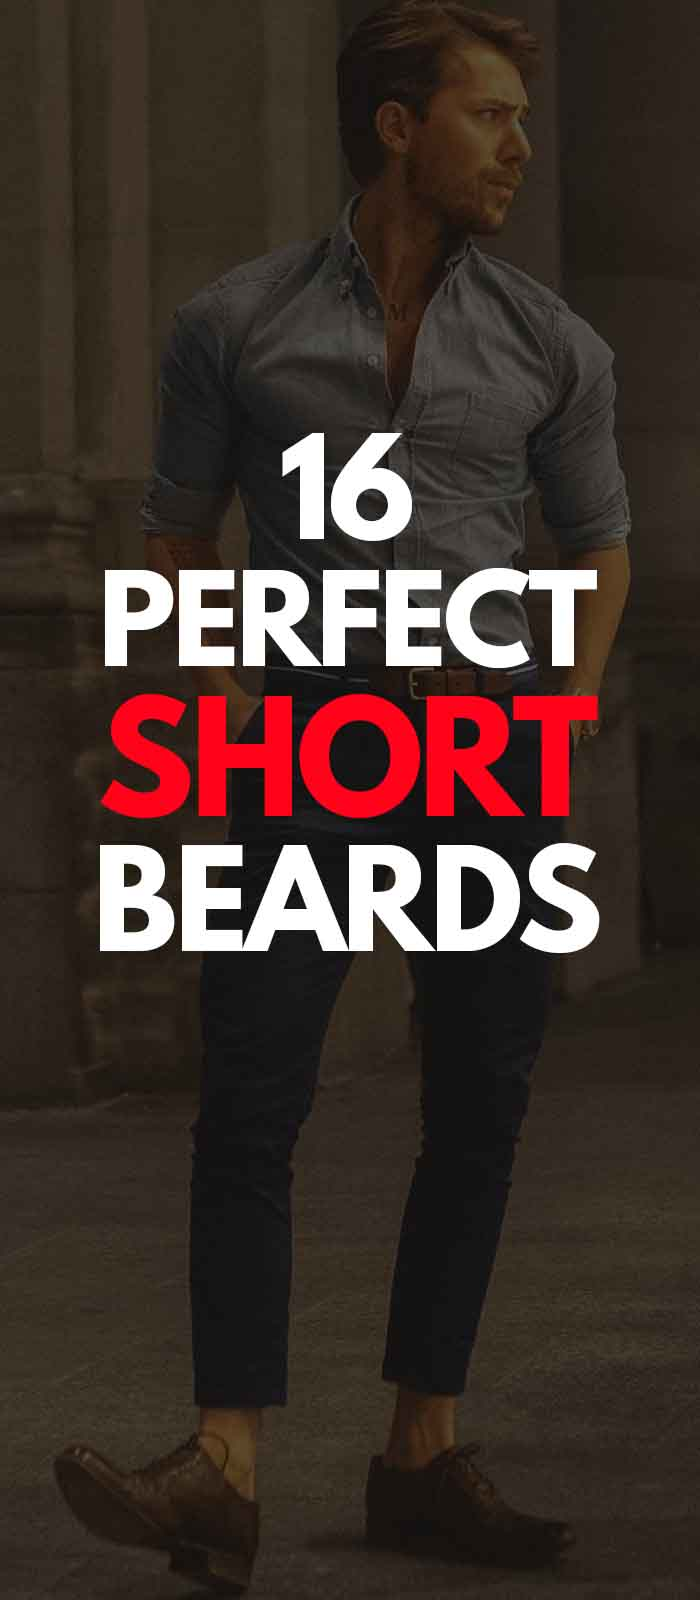 Guide to get the Perfect Short Beard for men!